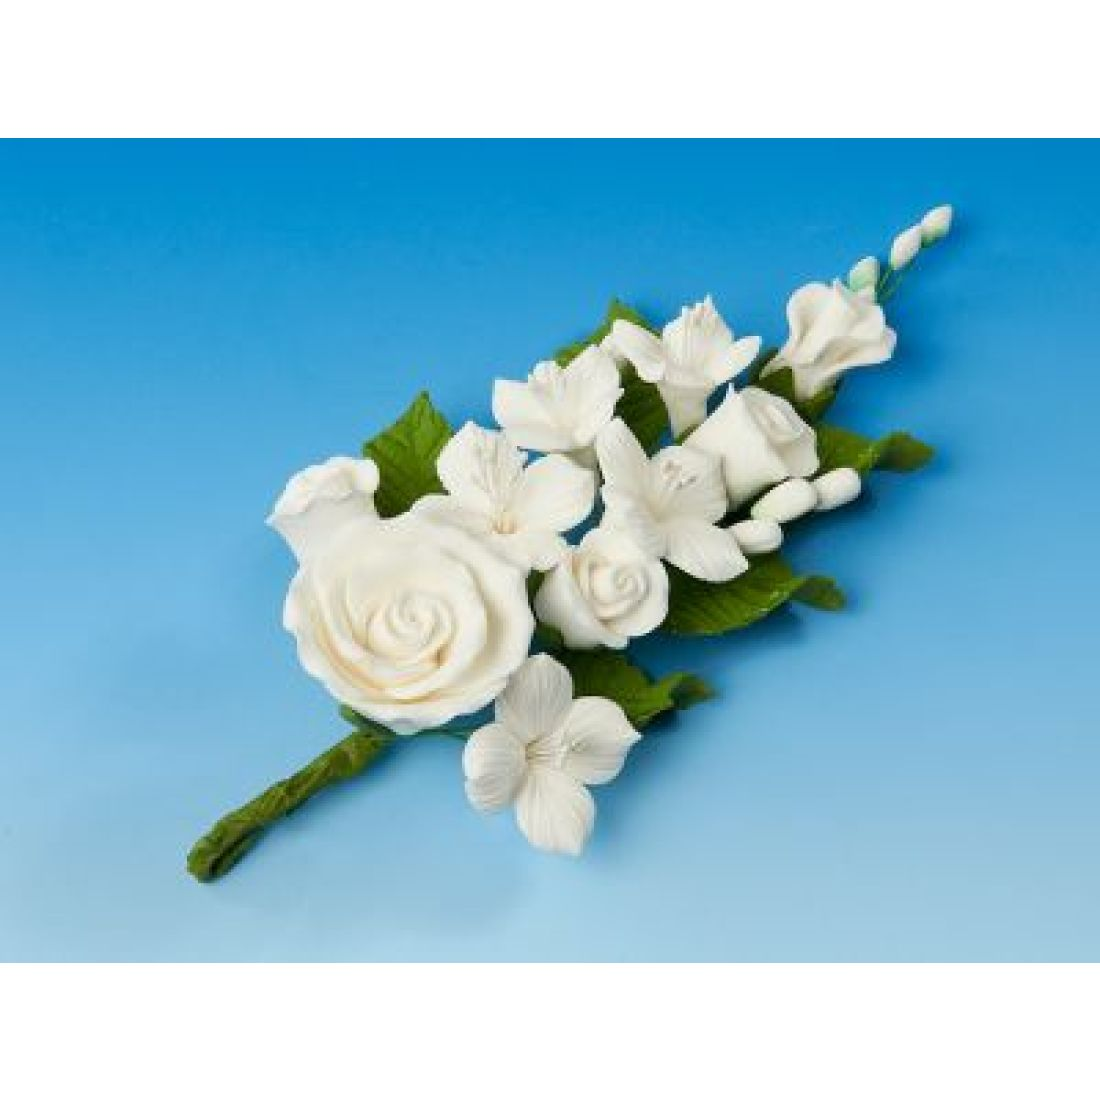 Large White Rose & Dogwood Spray | Squires Kitchen Shop